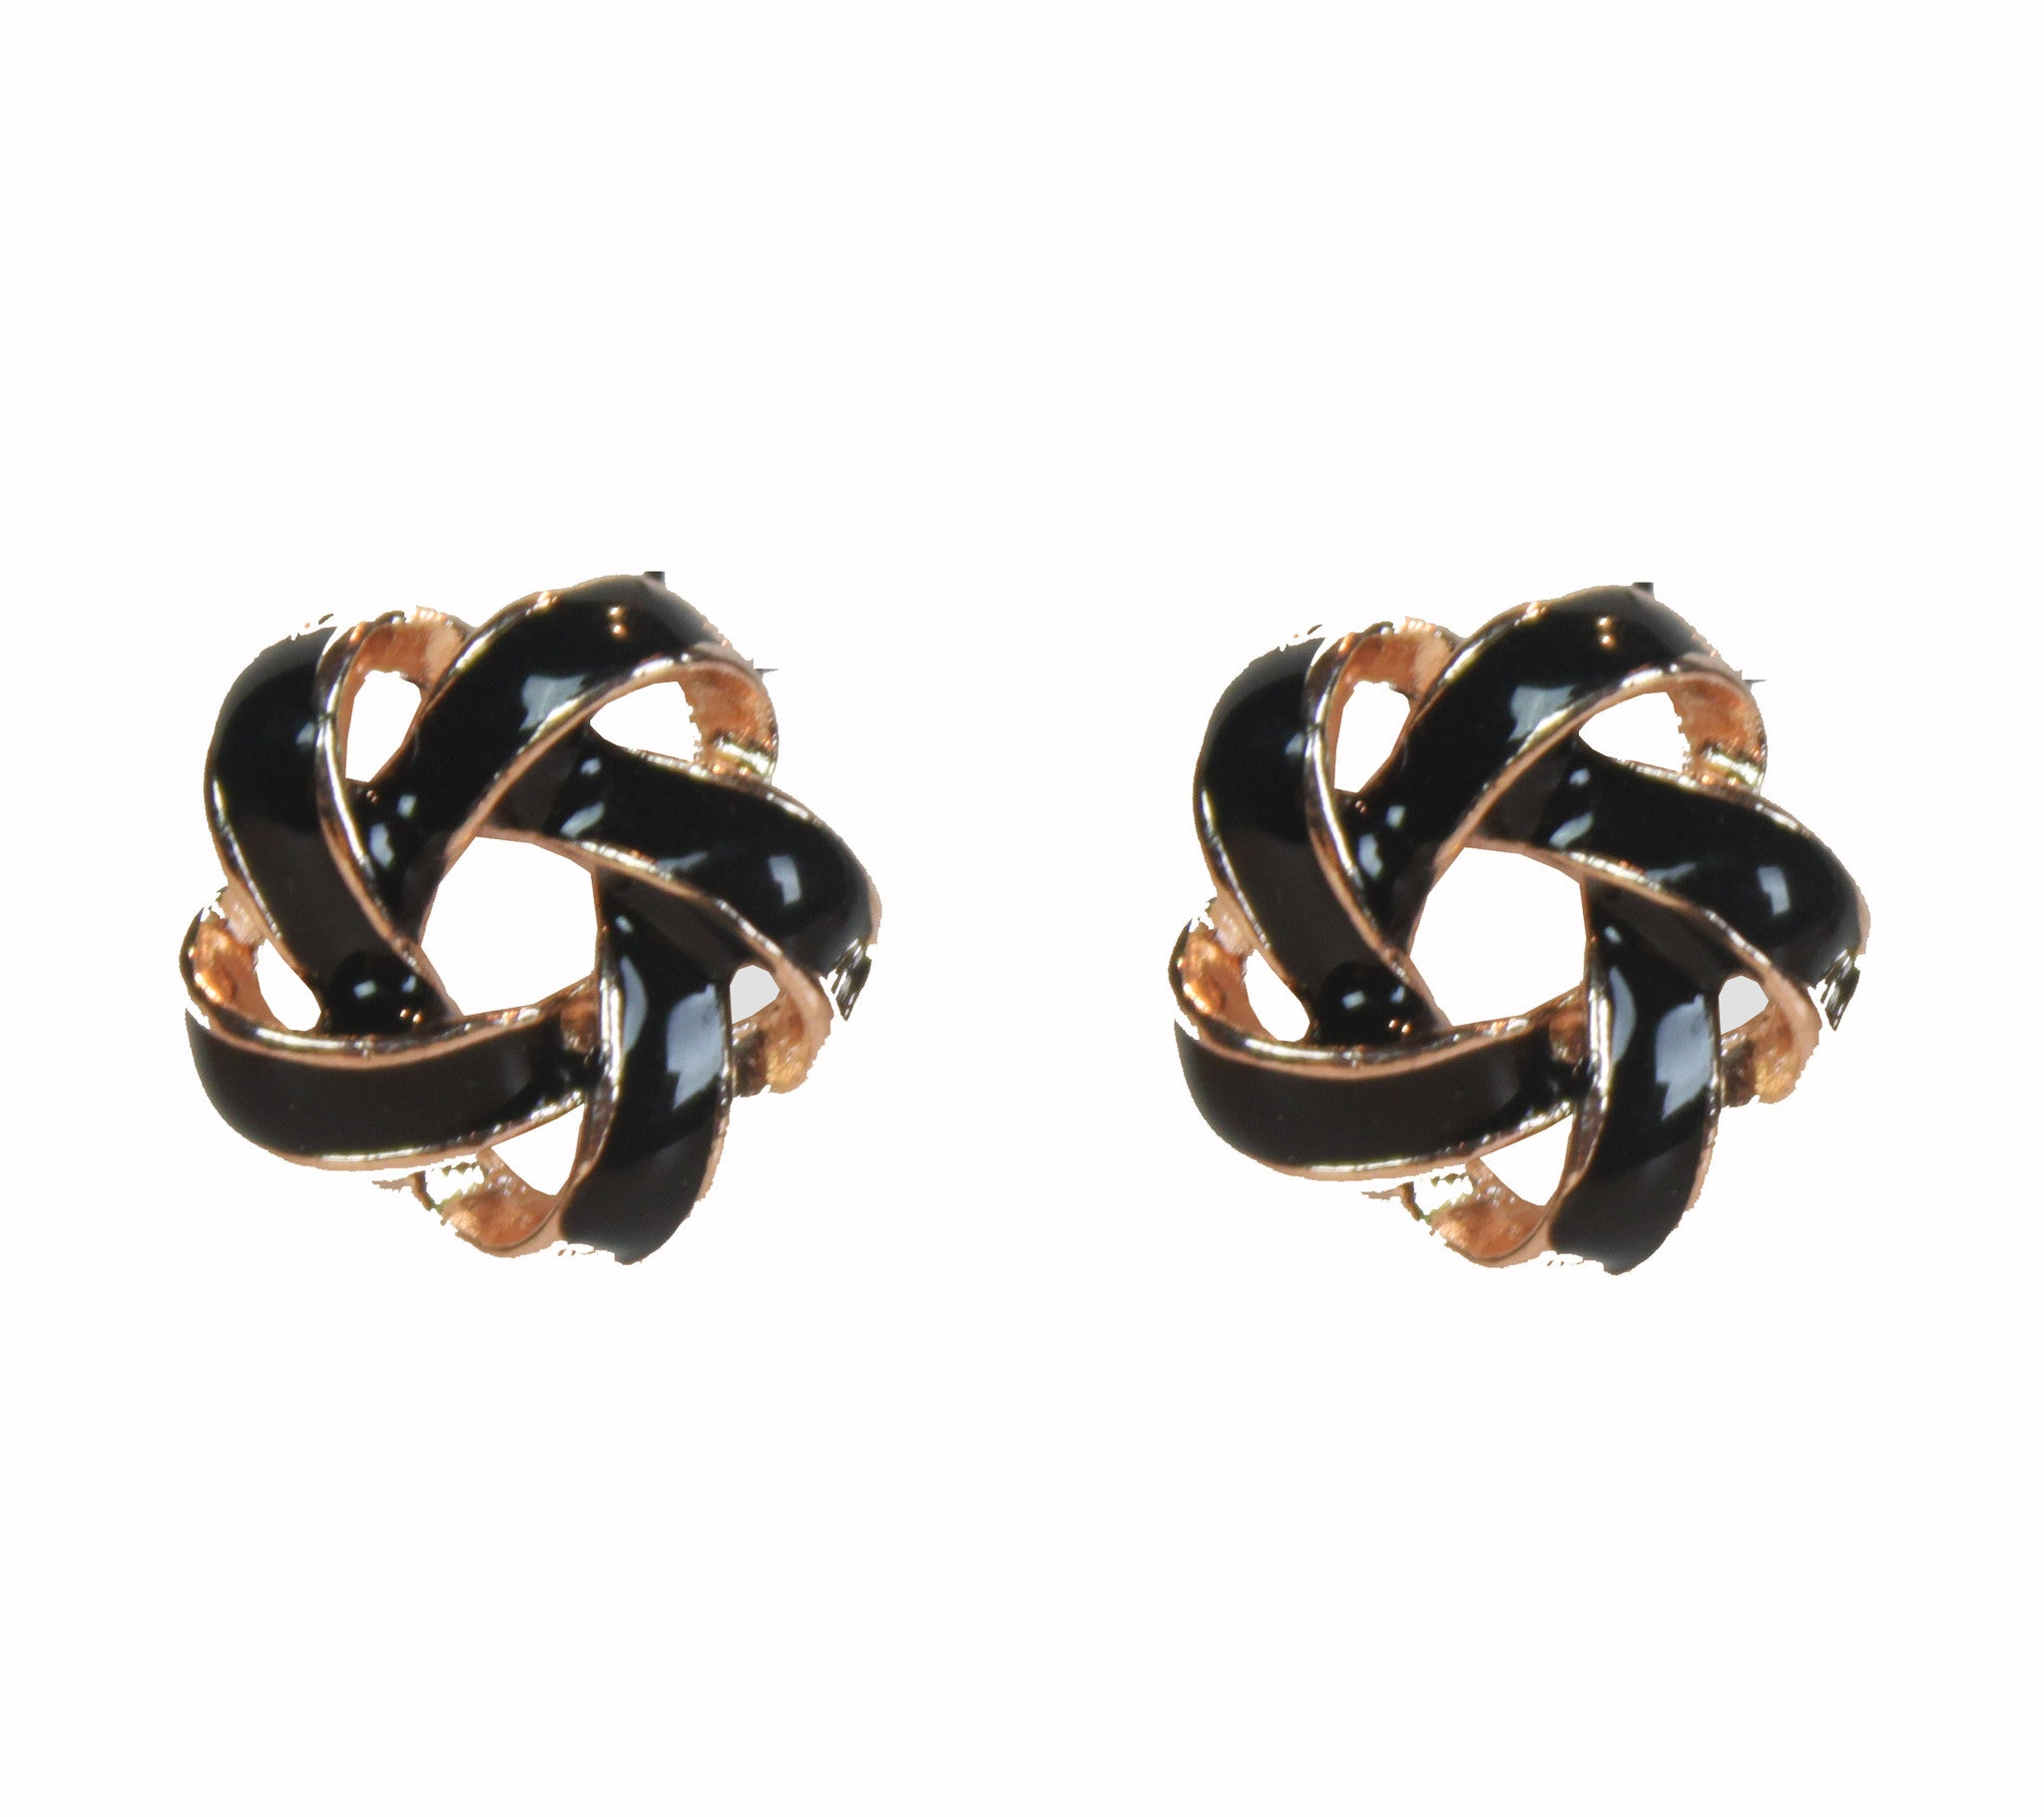 Cella Black Earrings